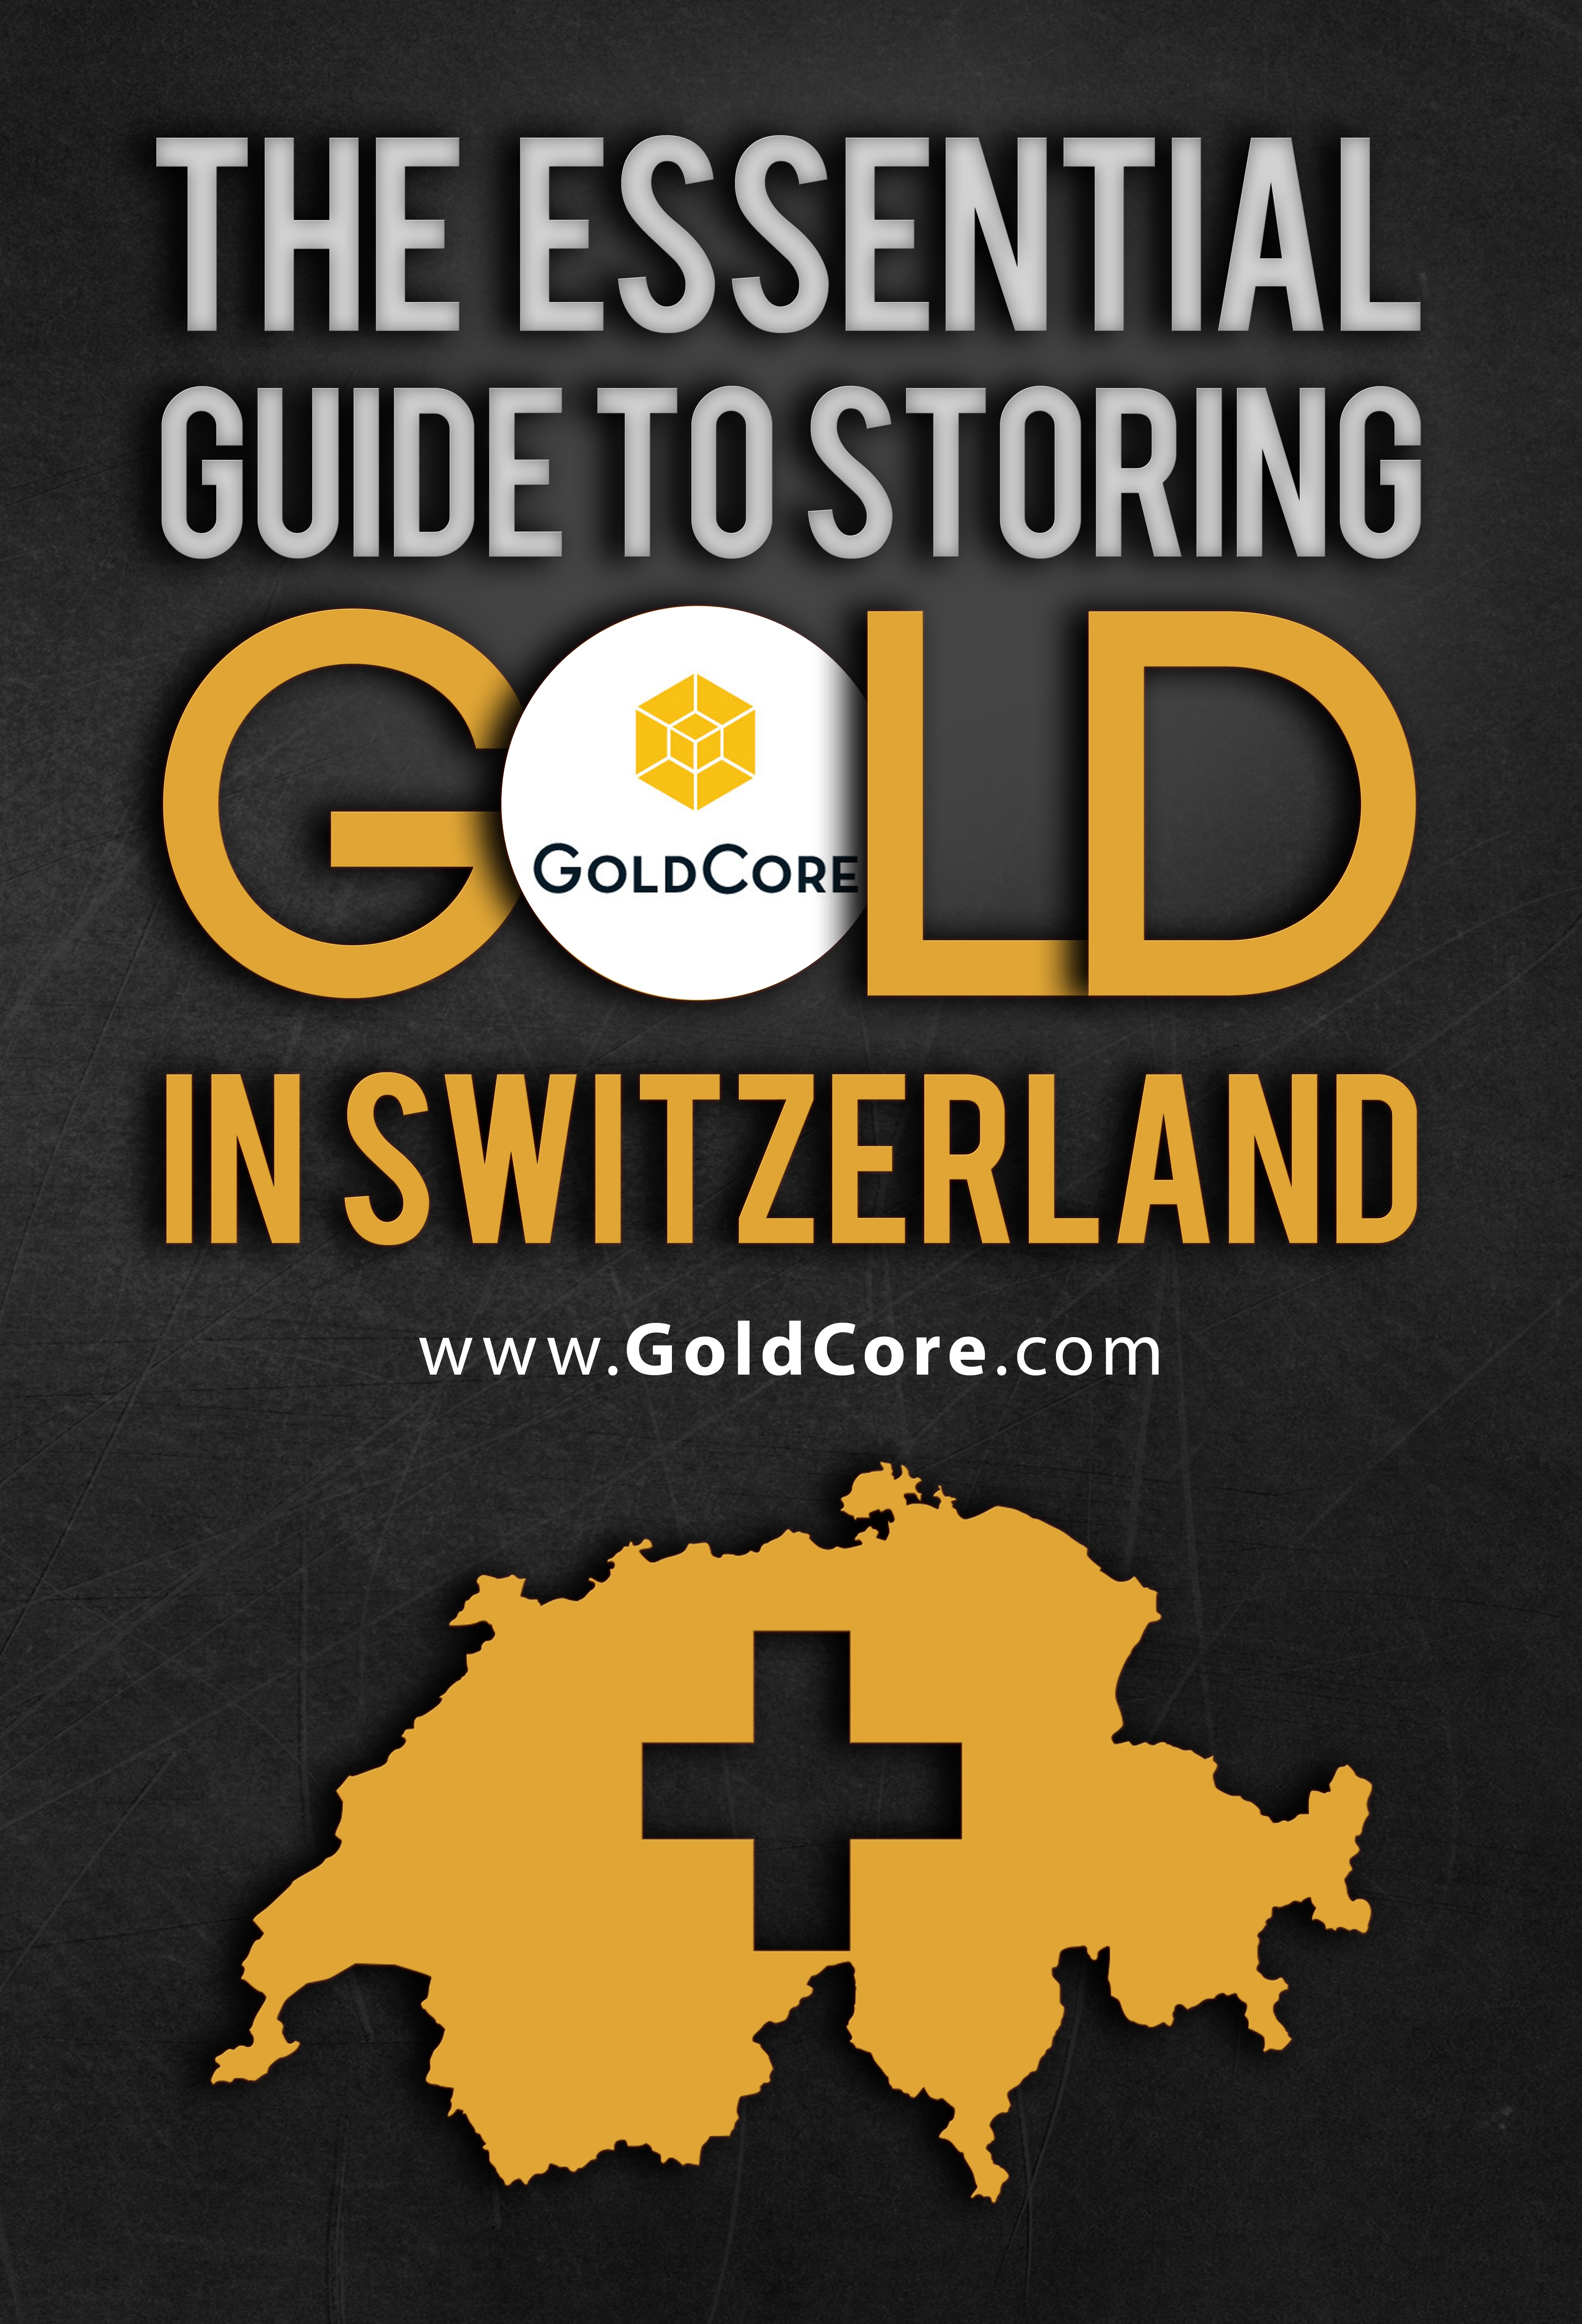 The_Essential_Guide_to_Storing_Gold_in_Switzerland_-_Copy.jpg